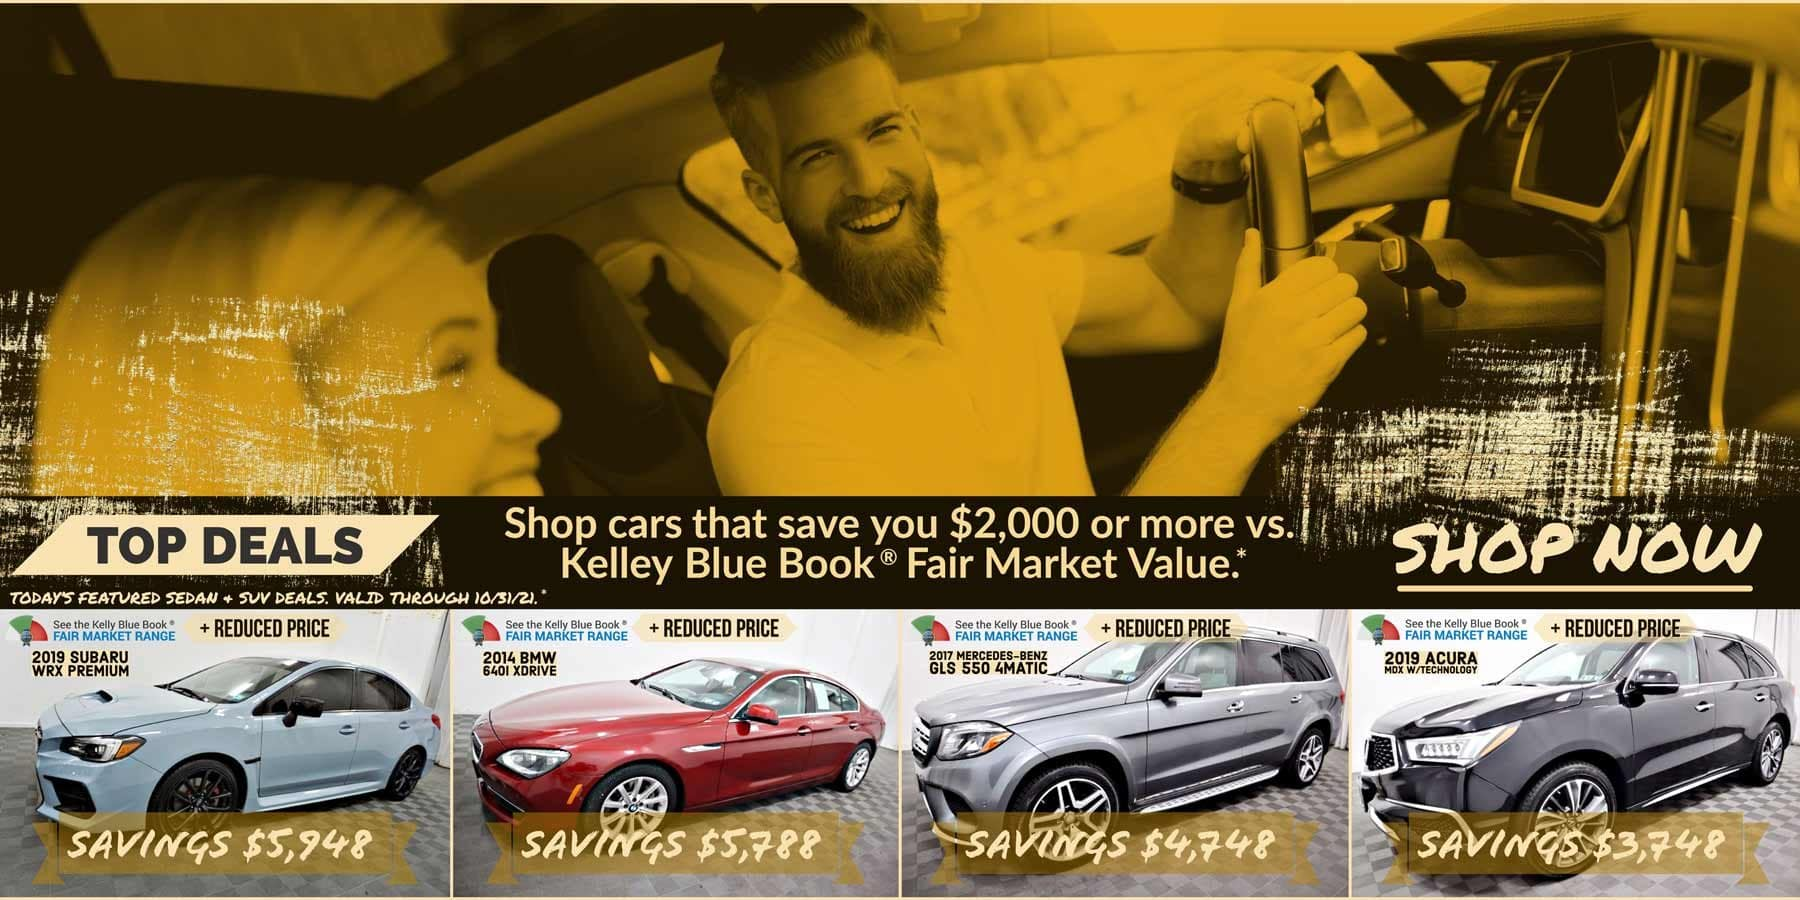 Today's featured Sedan & SUV for sale deals. Valid through 10/31/21.